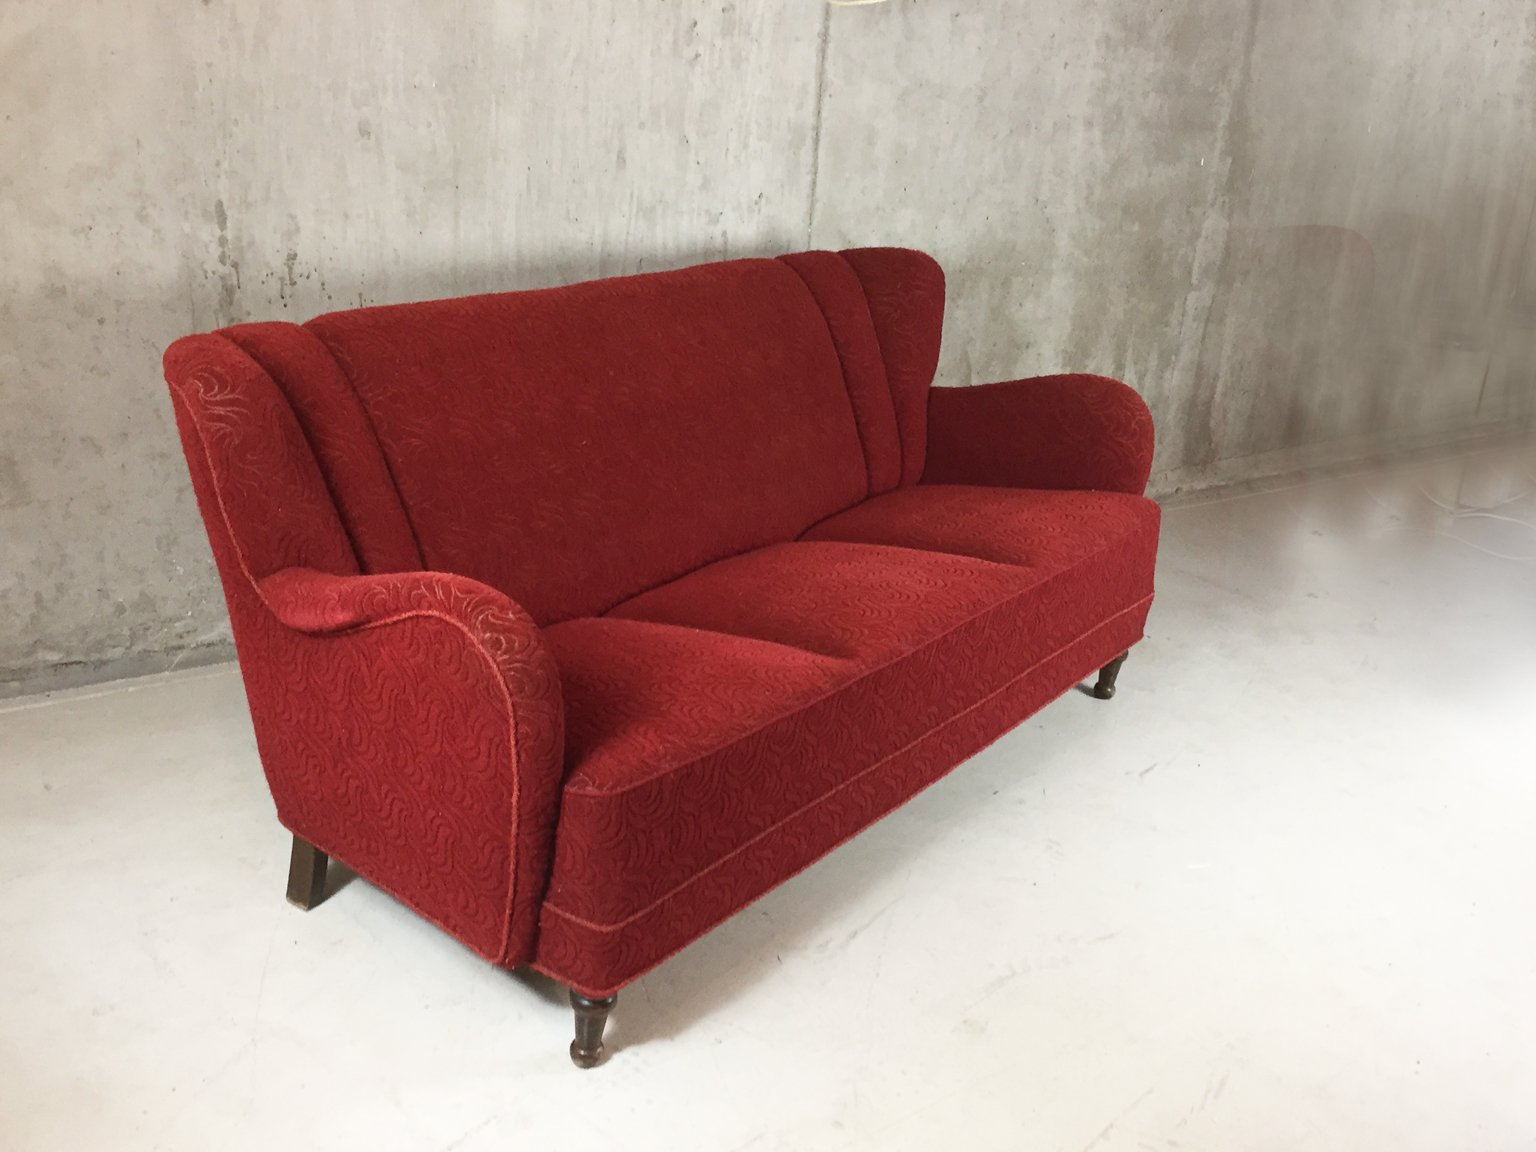 Danish Three Seater Sofa With Red Patterned Upholstery 1950s For Sale At Pamono